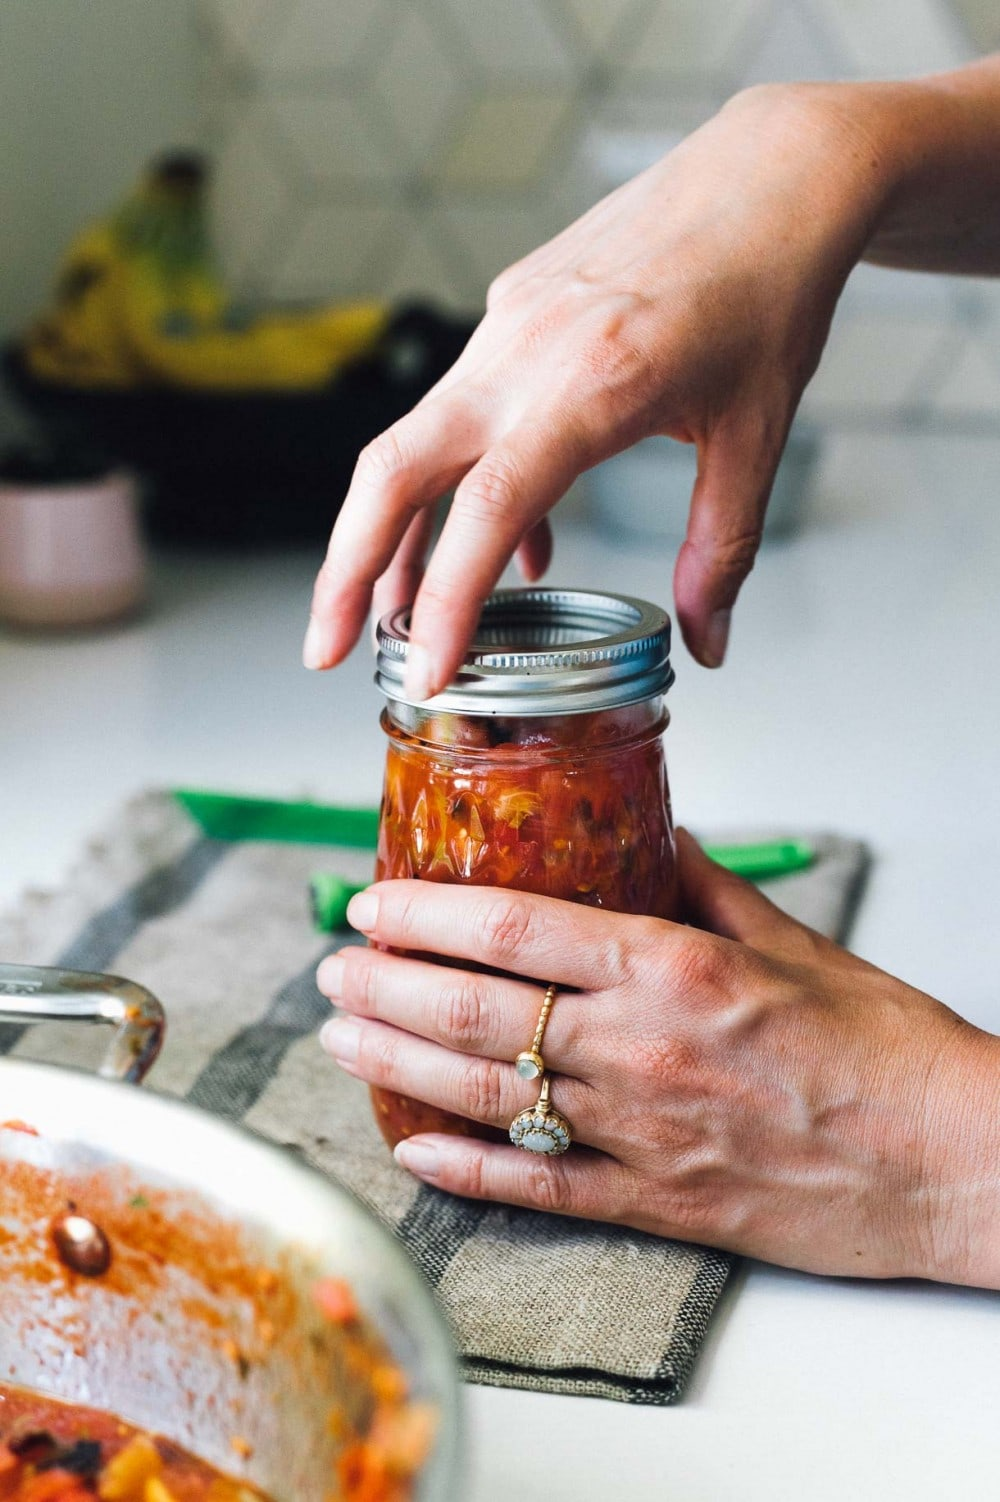 screwing the lid on a jar of salsa